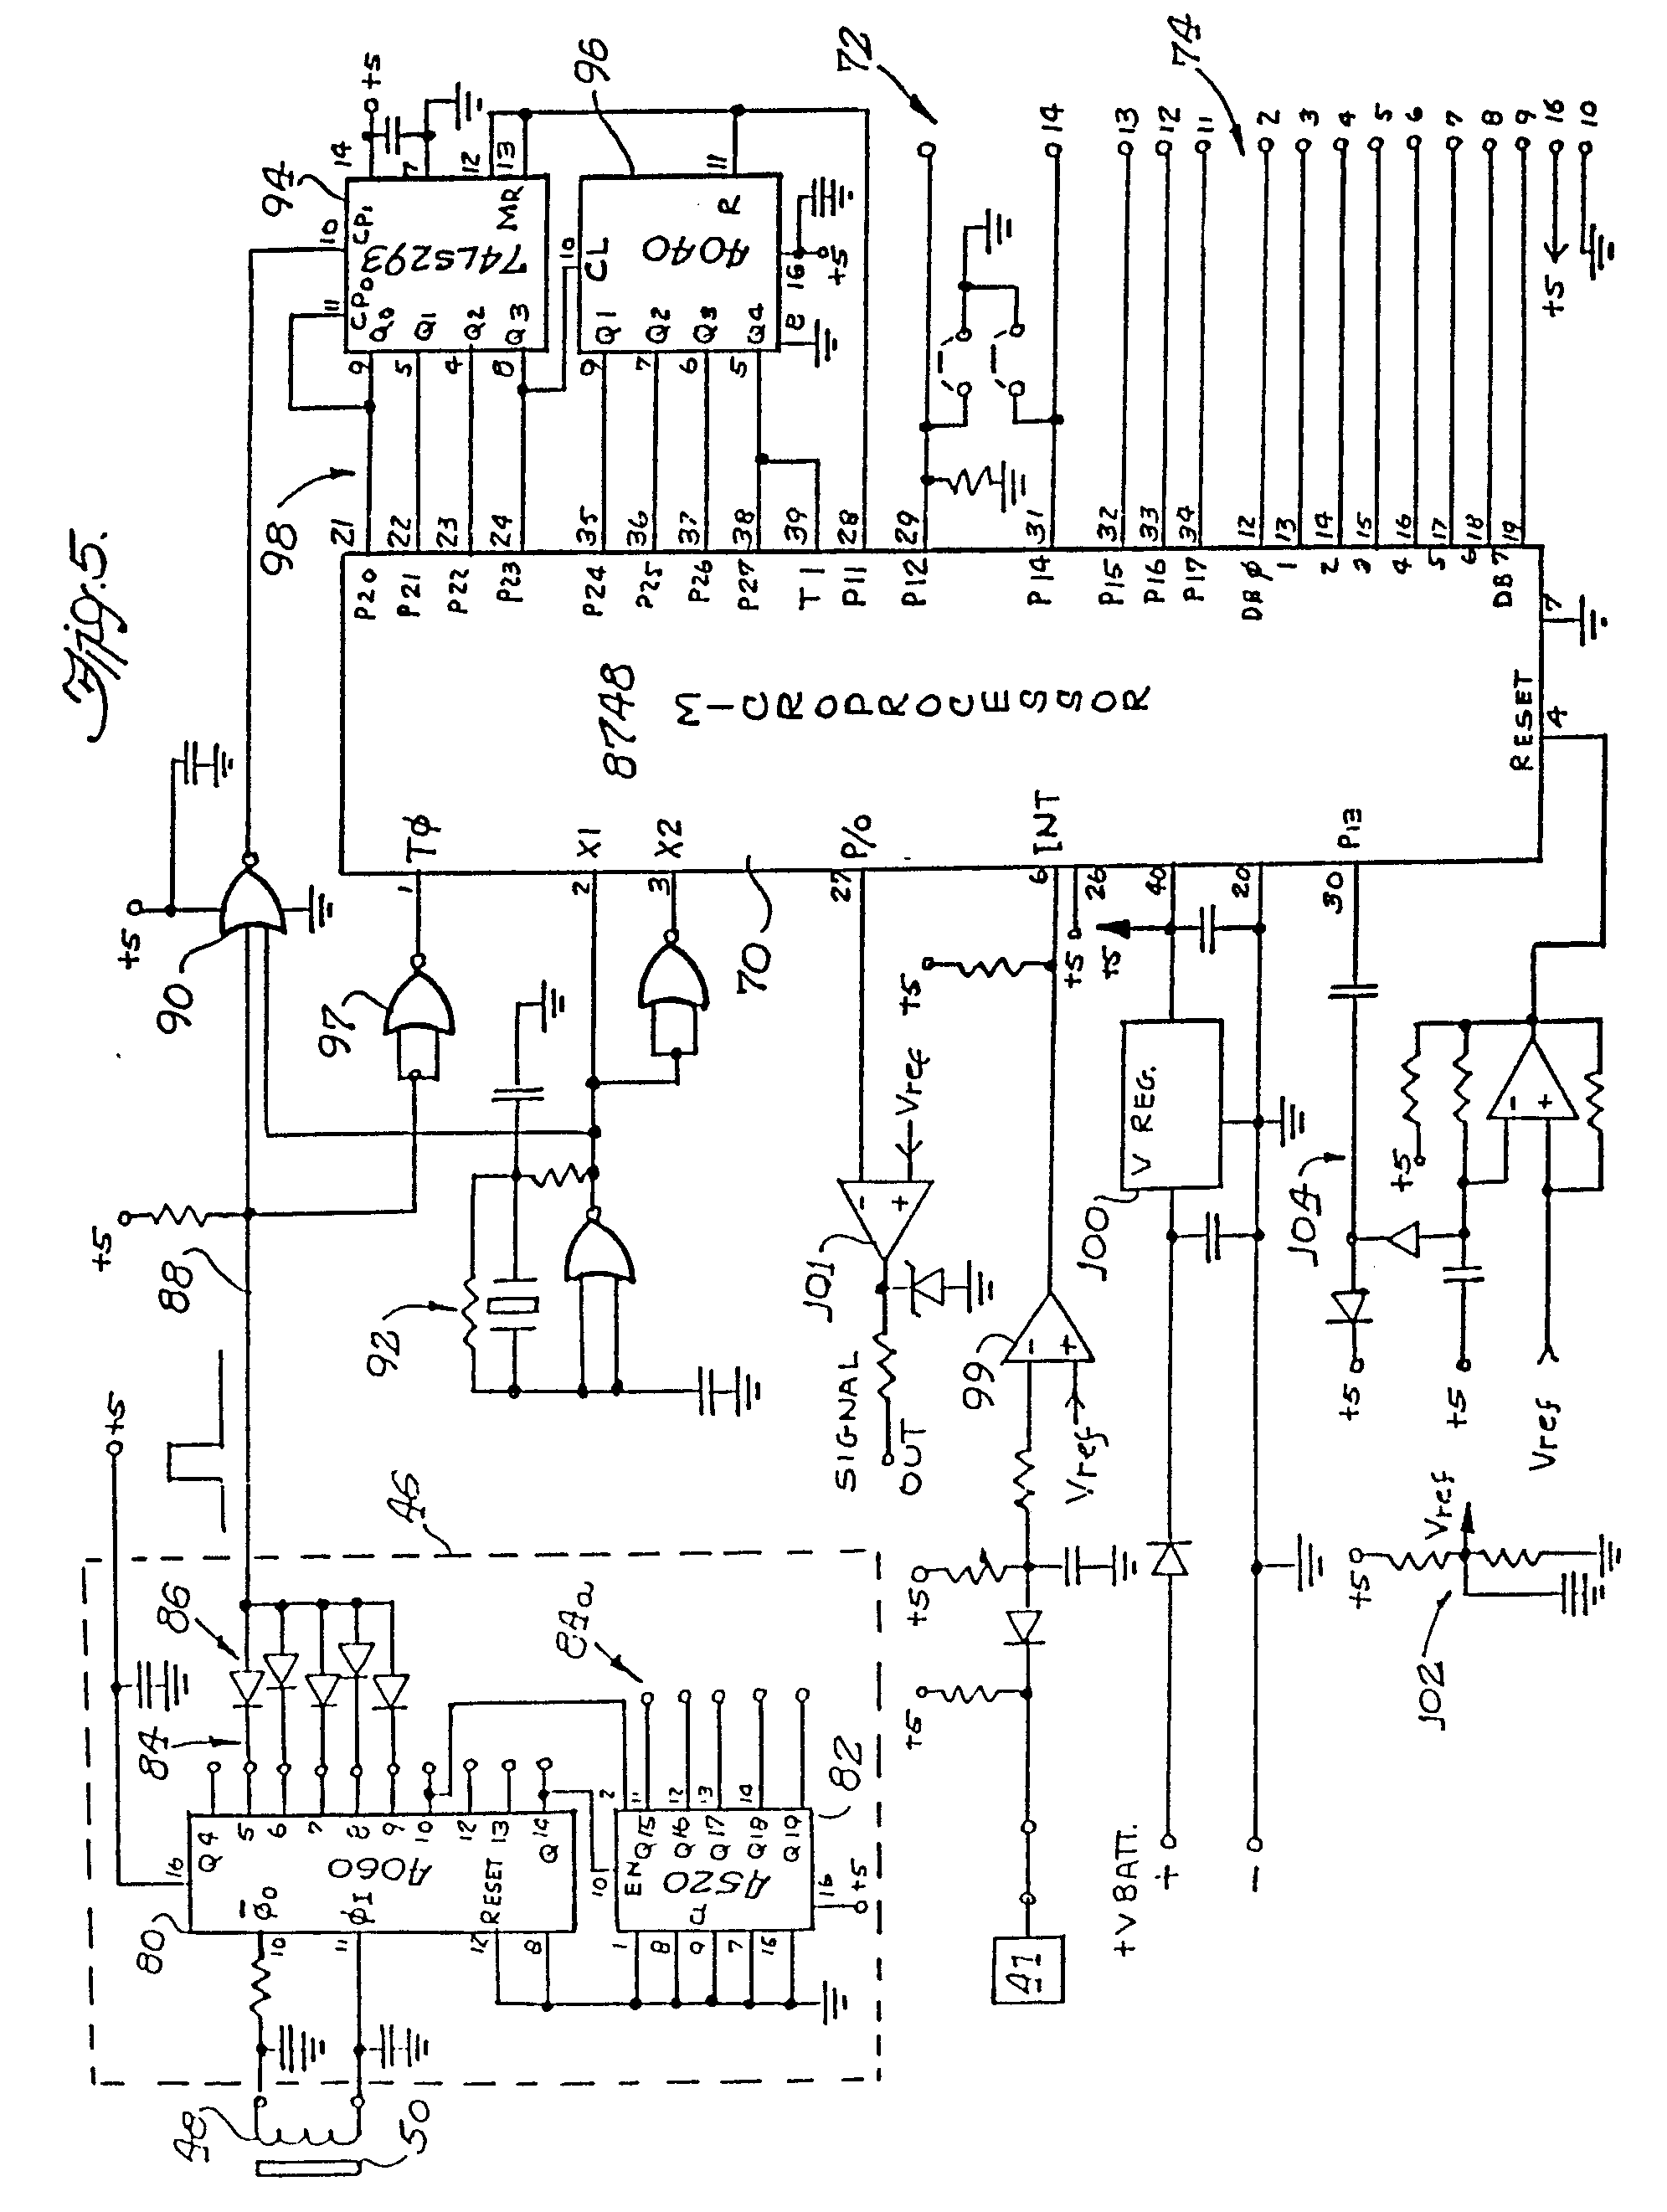 Ford Naa Tractor Wiring Diagram Schematics Diagrams 8n Firing Order 641 Autos Post Basic Ignition